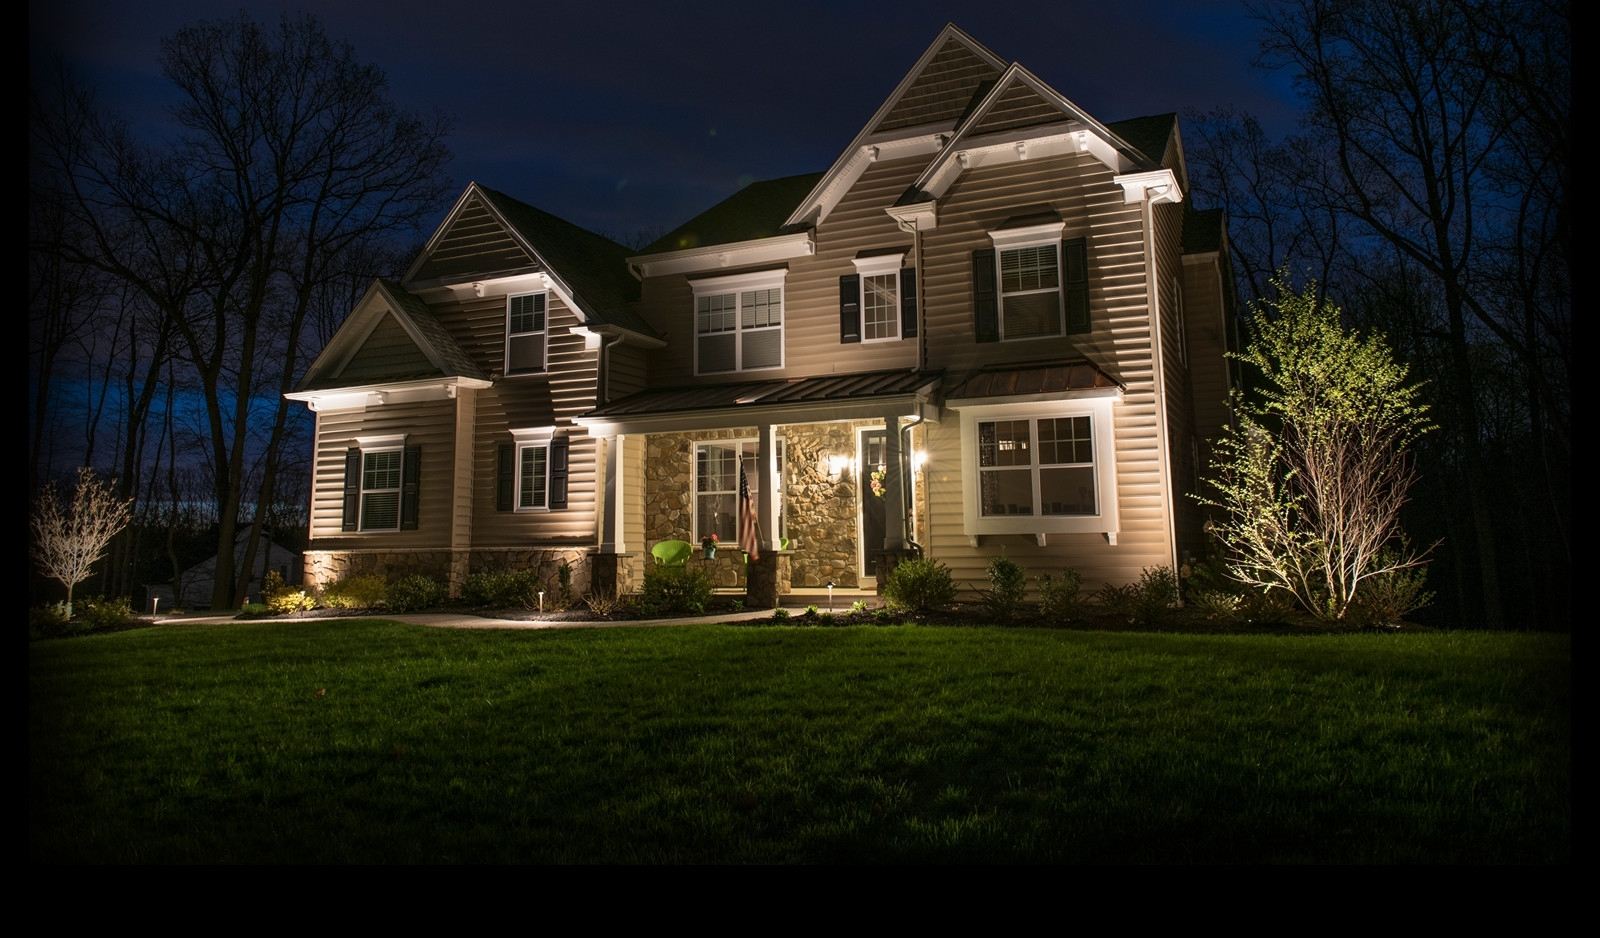 Ideas For Hanging Lights Outside Front And Backyard Landscaping Within Most Up To Date Outdoor House Lanterns (View 16 of 20)